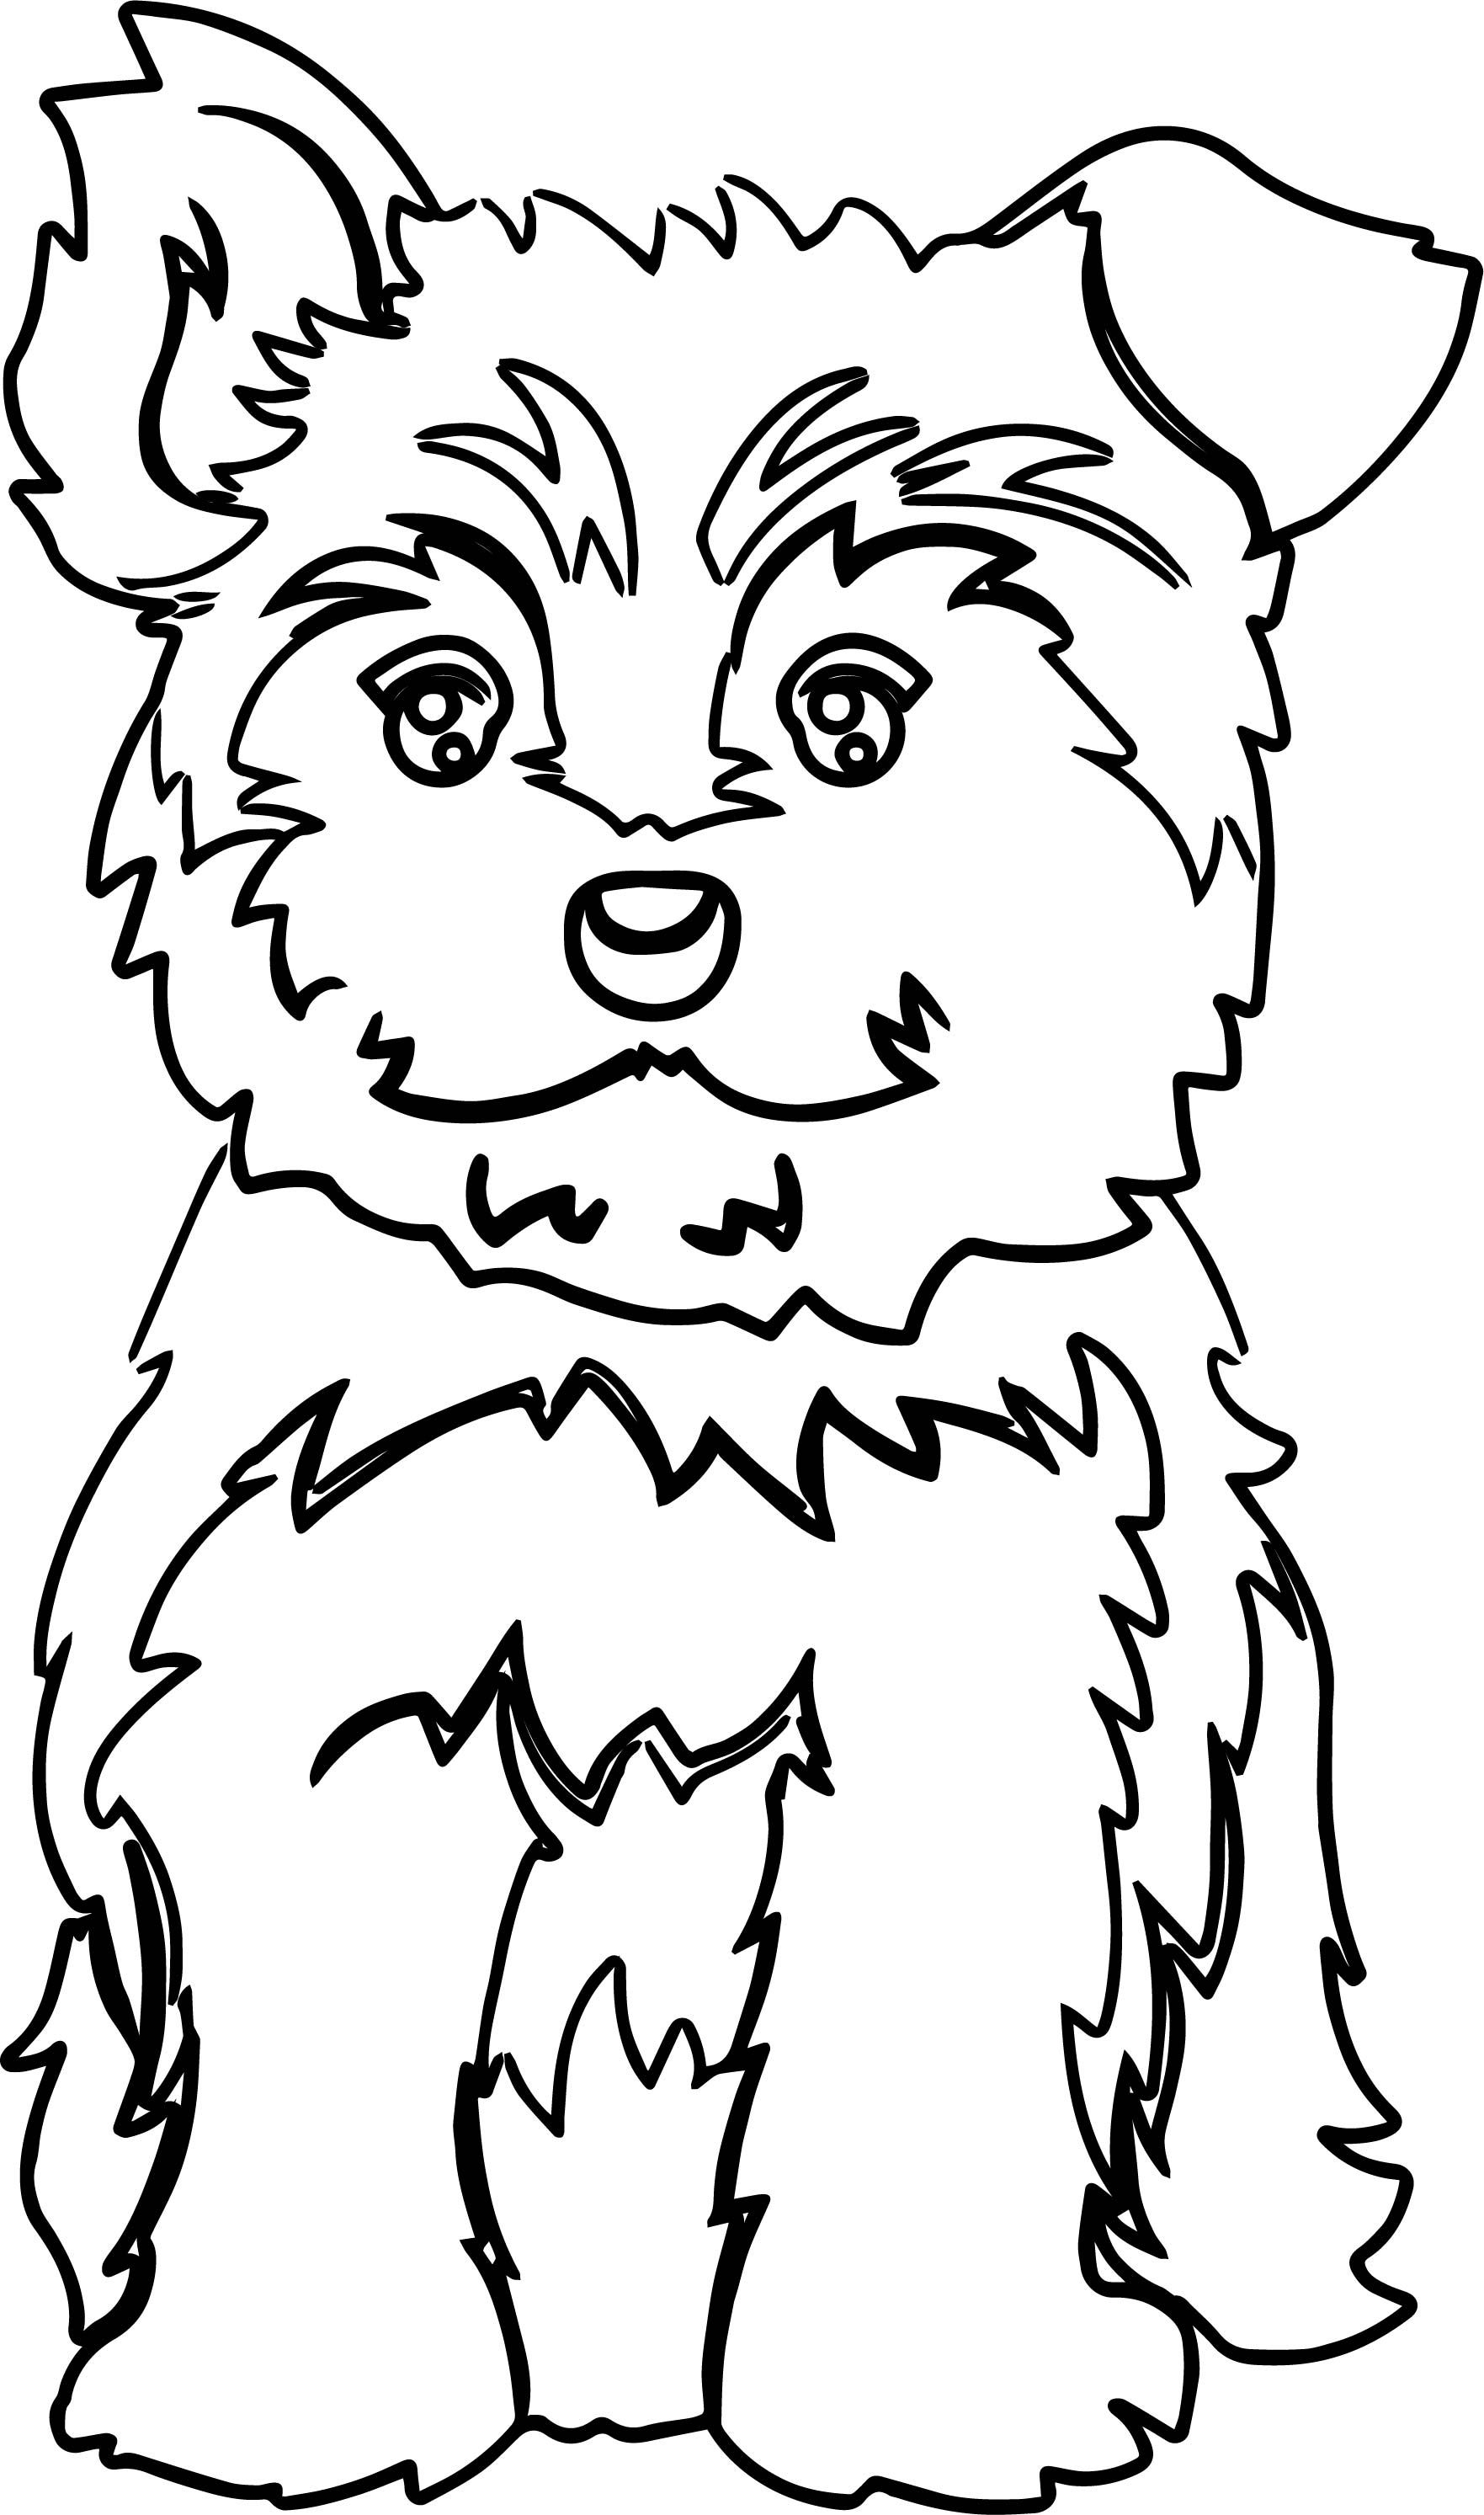 Cool Yorkie Puppy Color Dog Puppy Coloring Page Puppy Coloring Pages Dog Coloring Page Yorkie Puppy